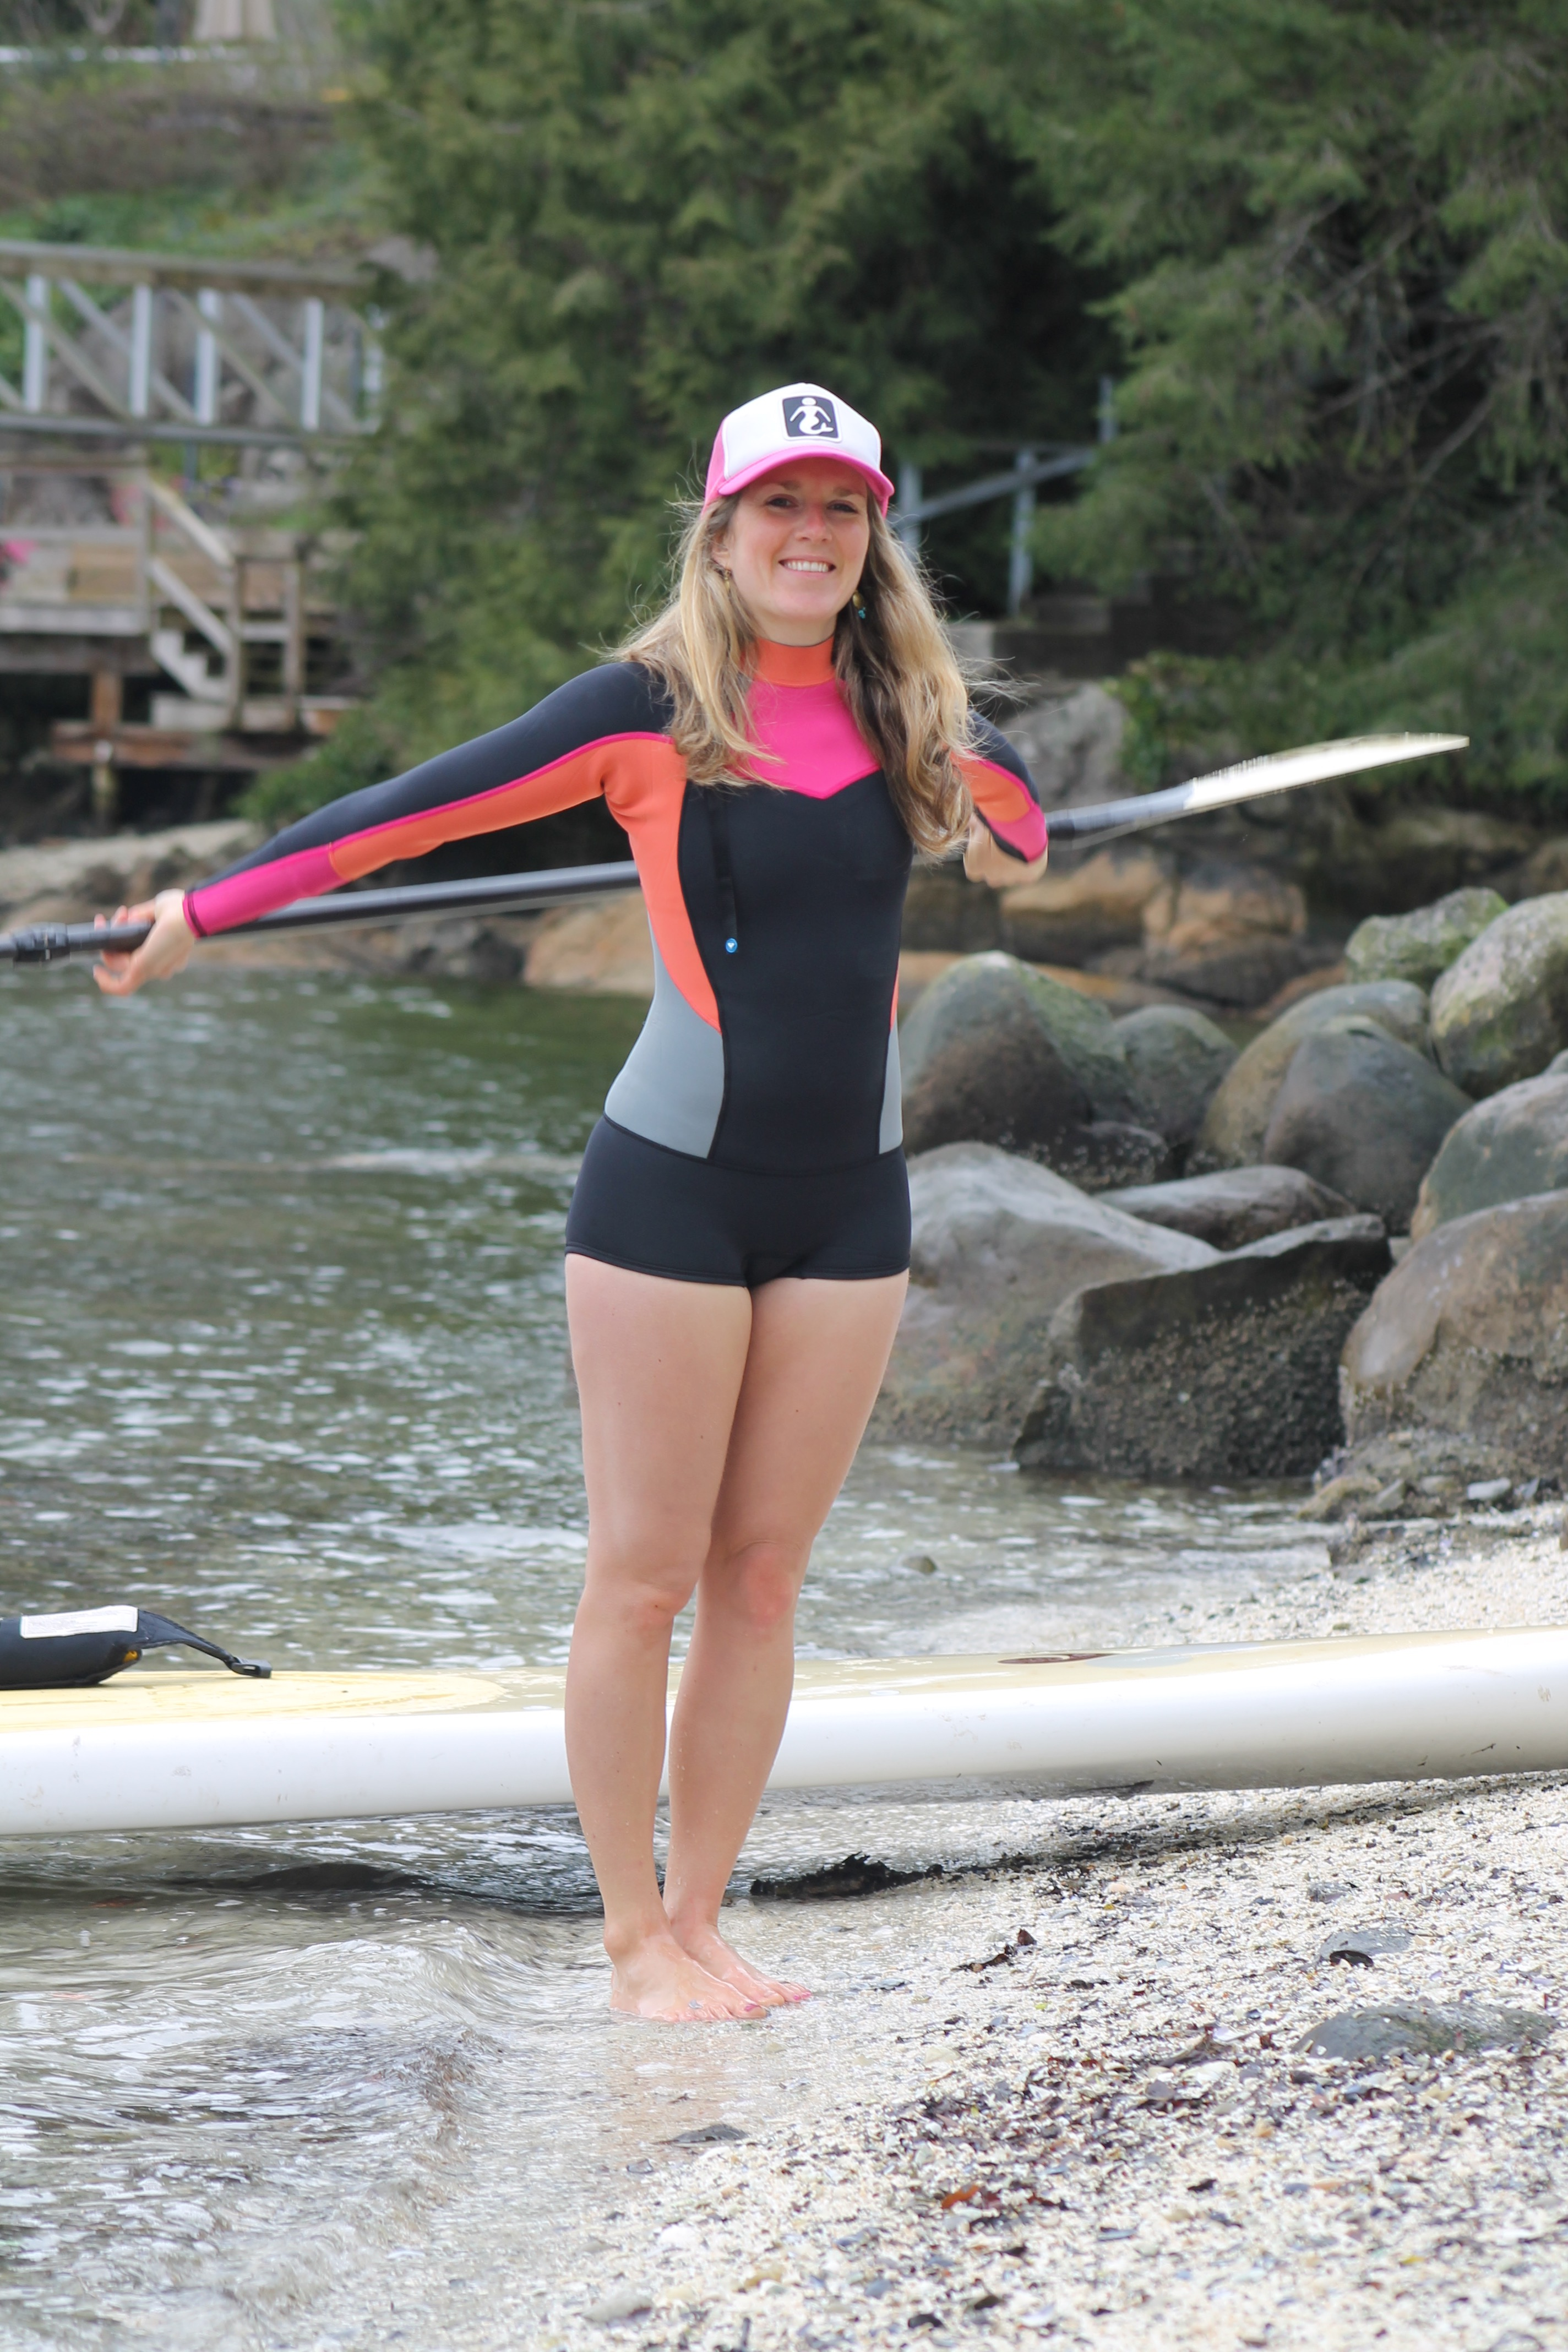 5 Super Simple Sup Warmup Stretches To Prevent Injury